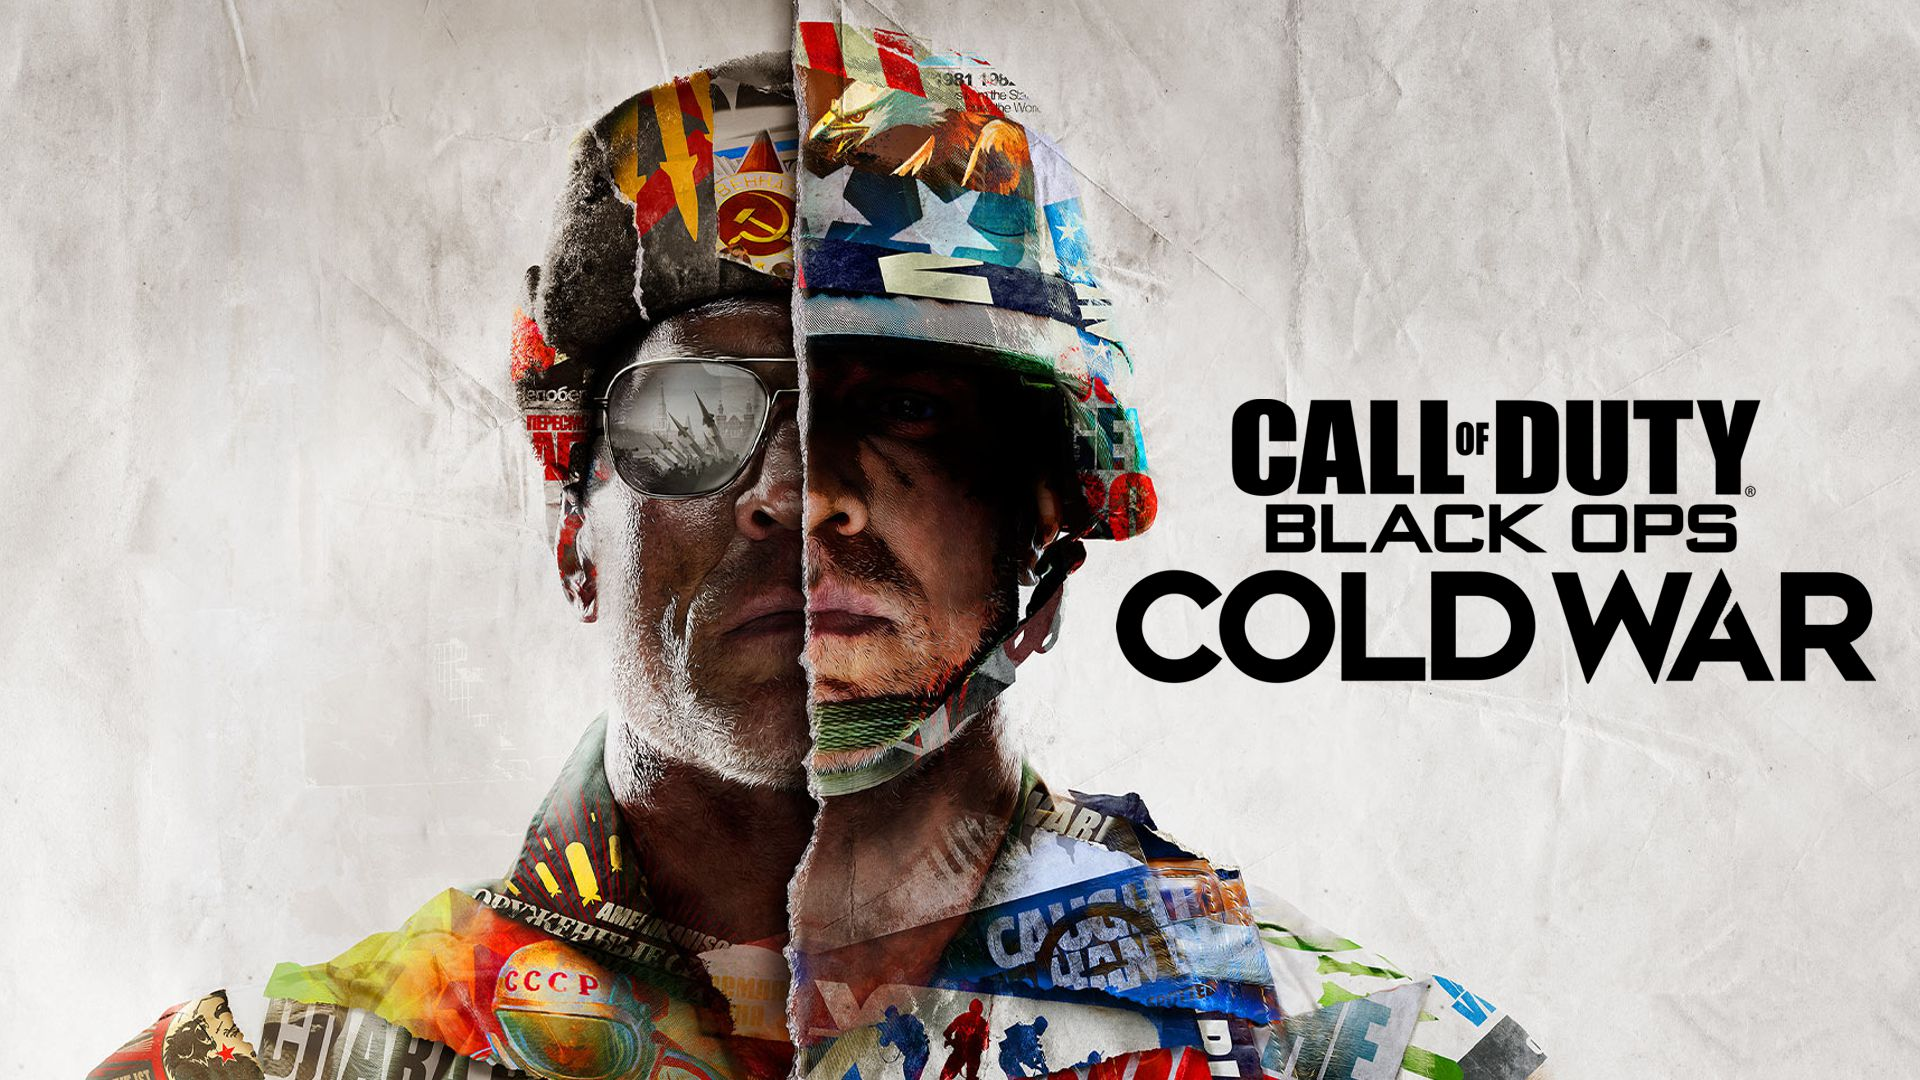 call-of-duty-black-ops-cold-war-affiche